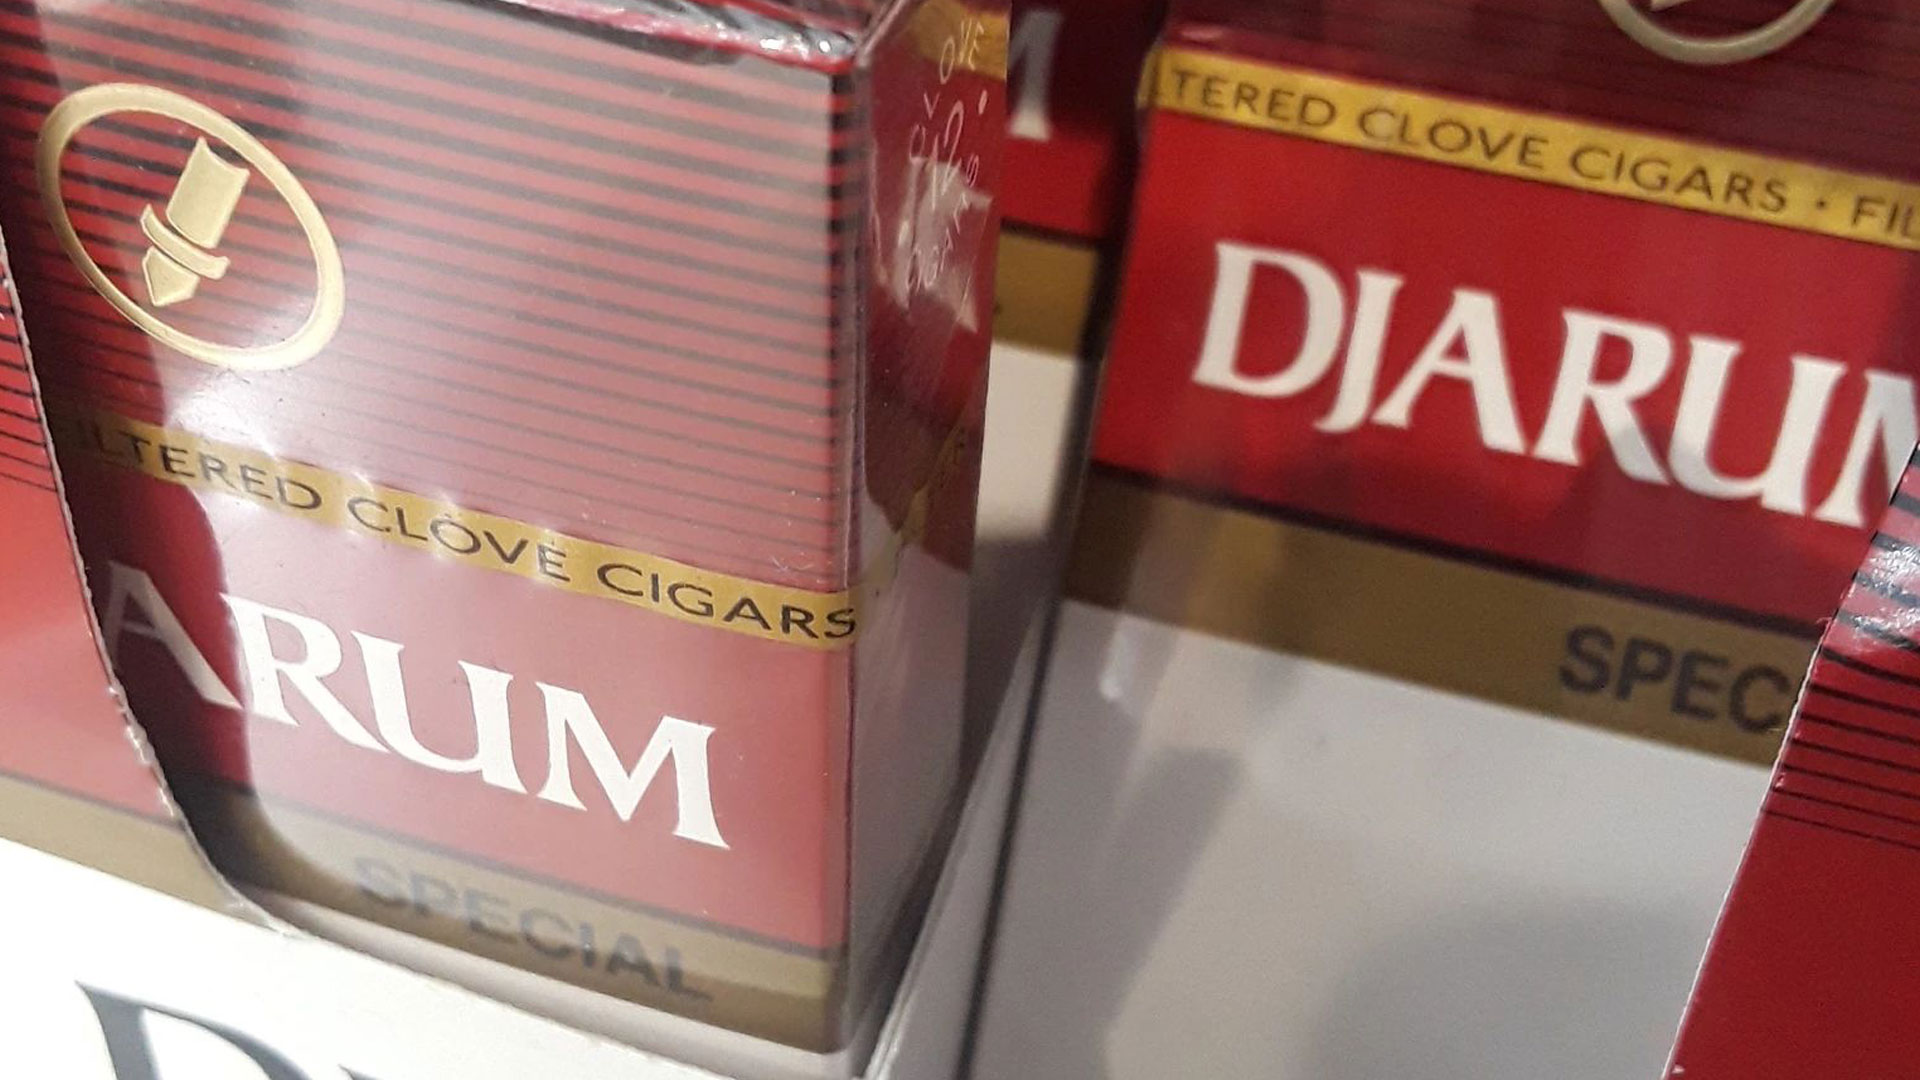 Djarum Special Cigars Review